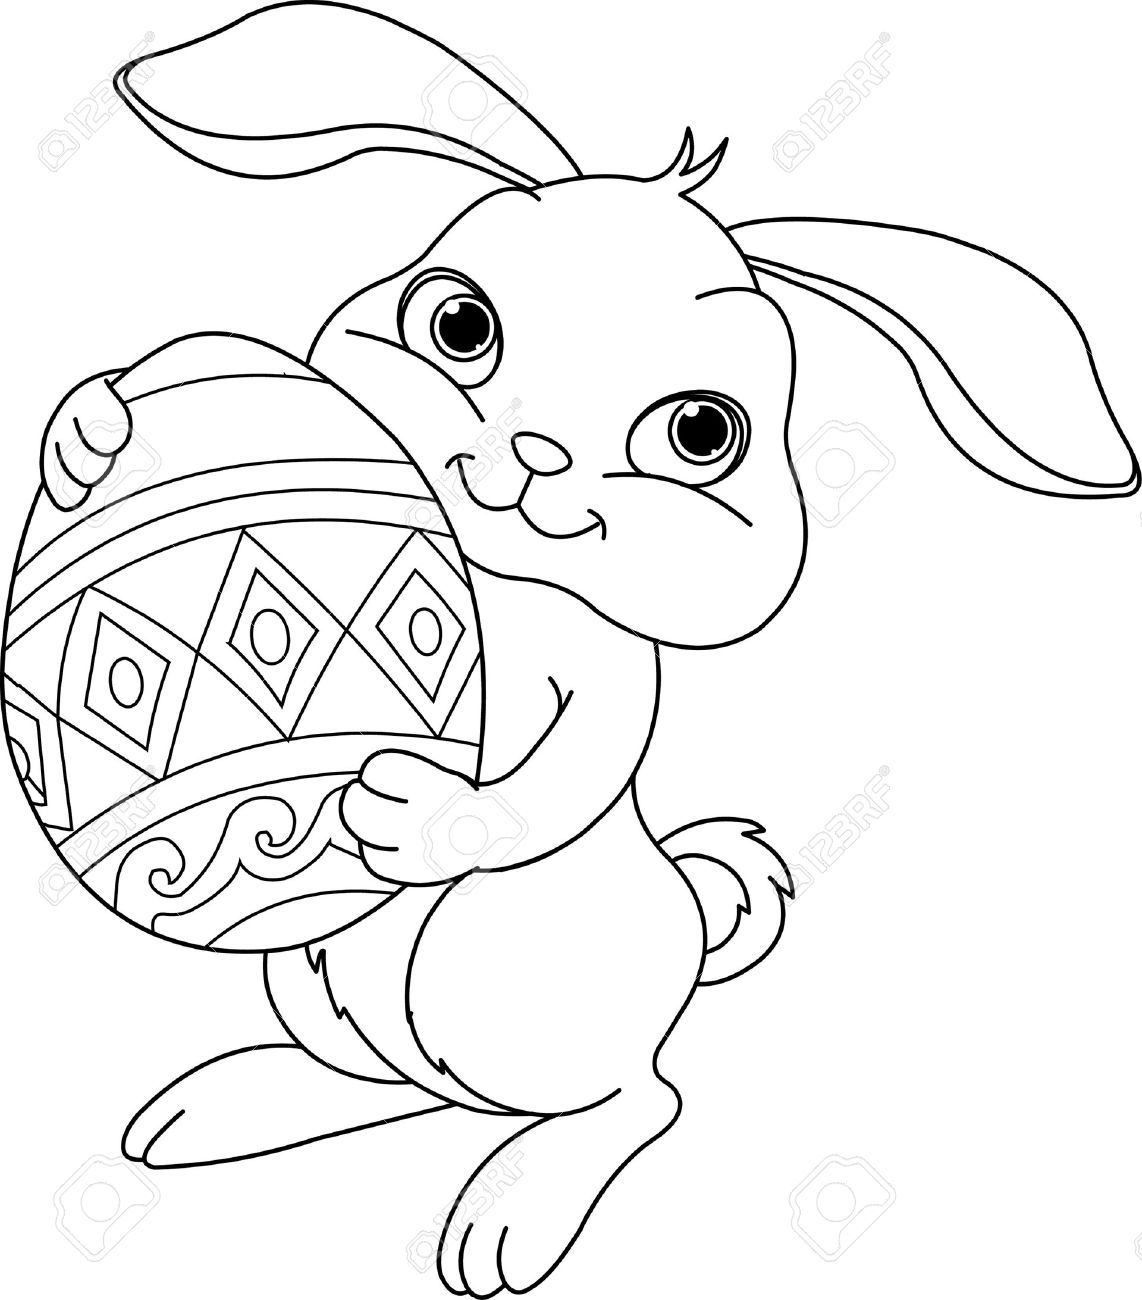 Line Art Resolution : Easter bunny clip art google search coloring pages